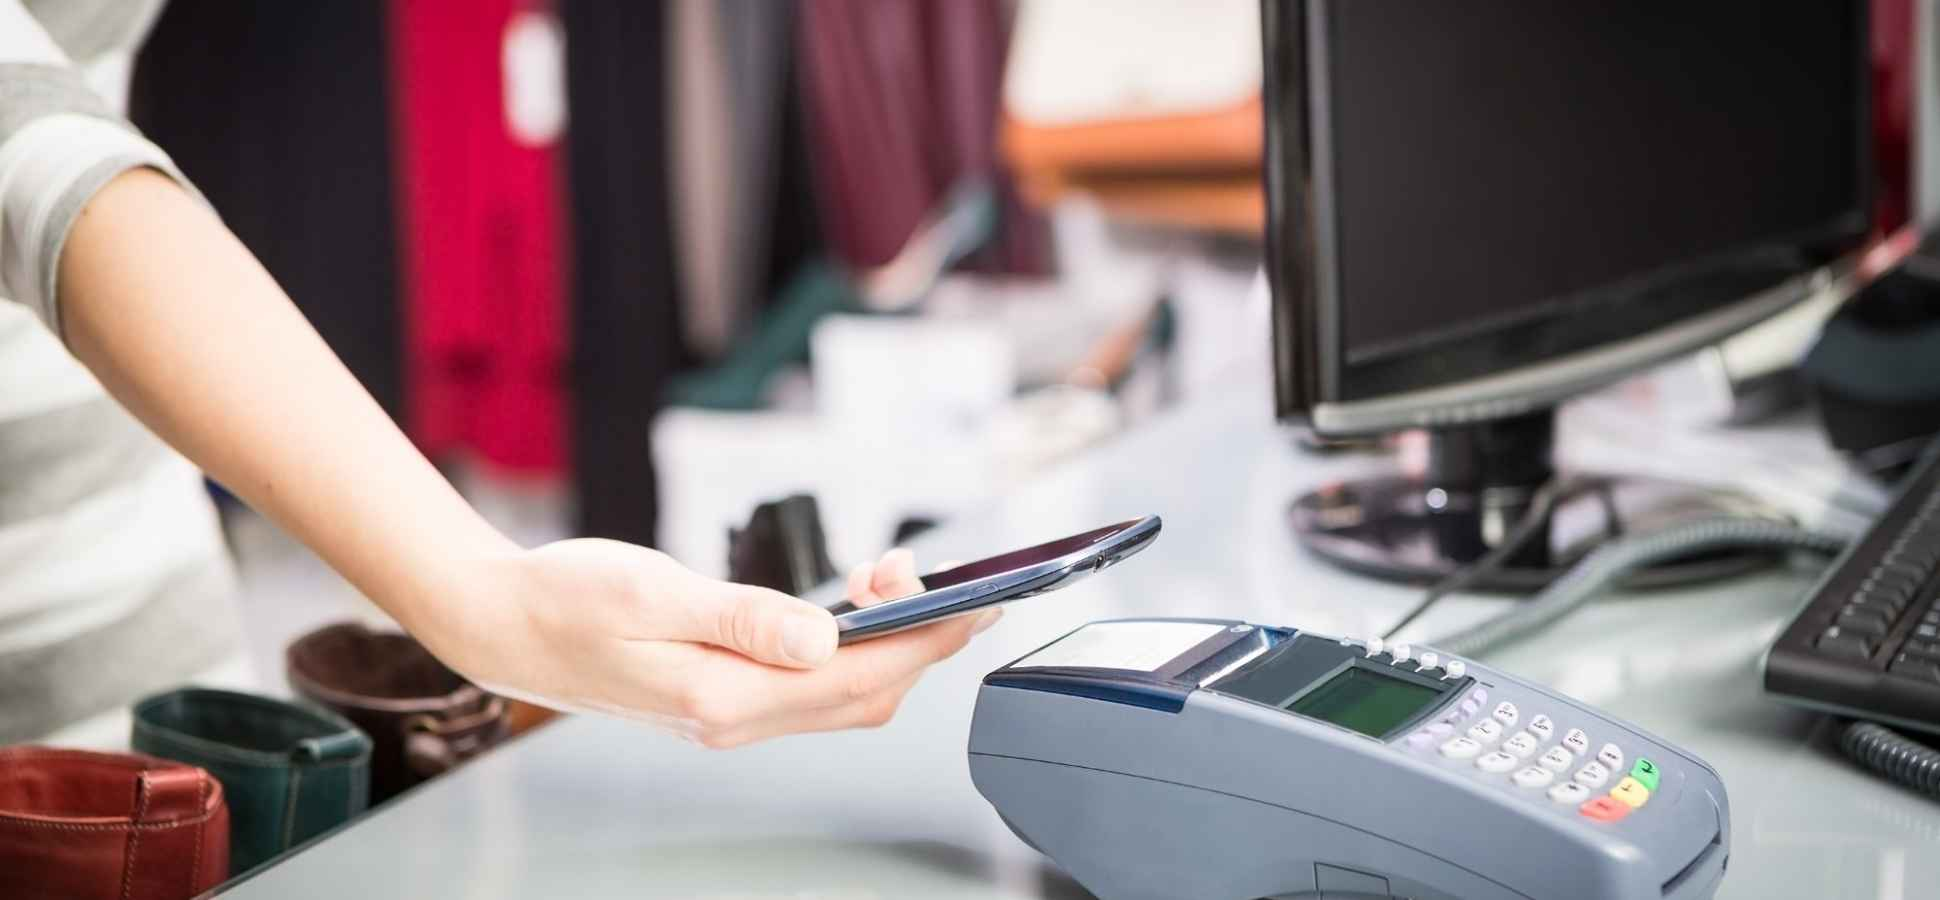 Not Accepting Any of These Payments? Your Business Is Going to Be Left Behind